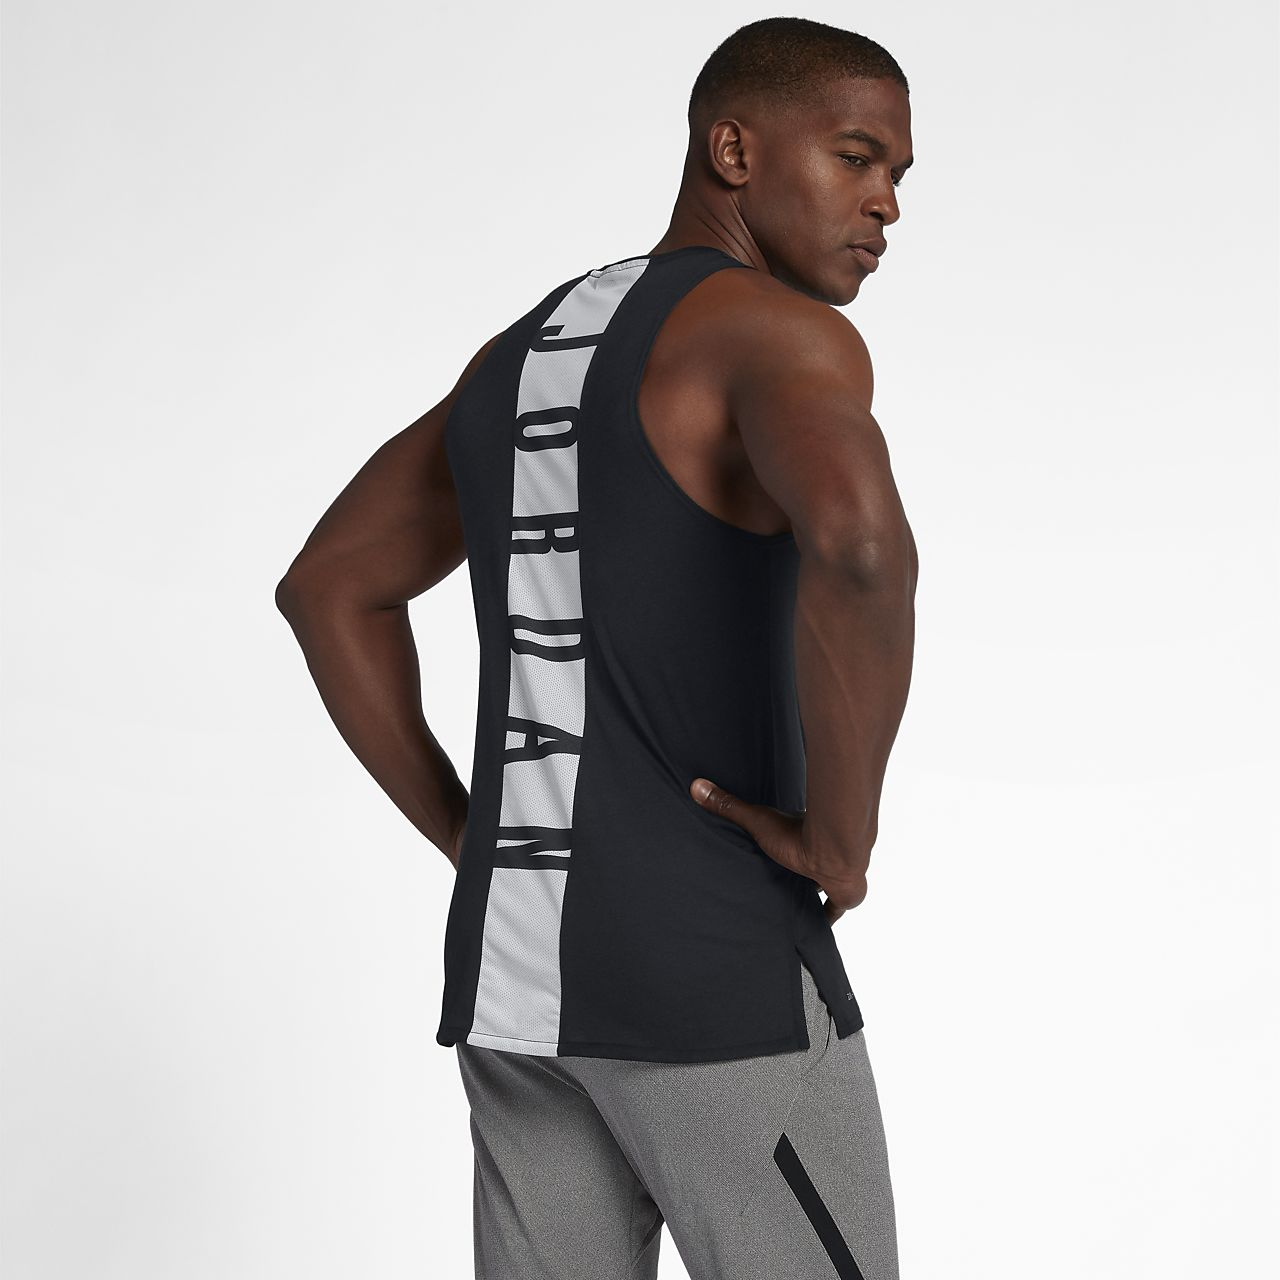 8d2f0da19baf61 Jordan 23 Alpha Men s Sleeveless Training Top. Nike.com AU